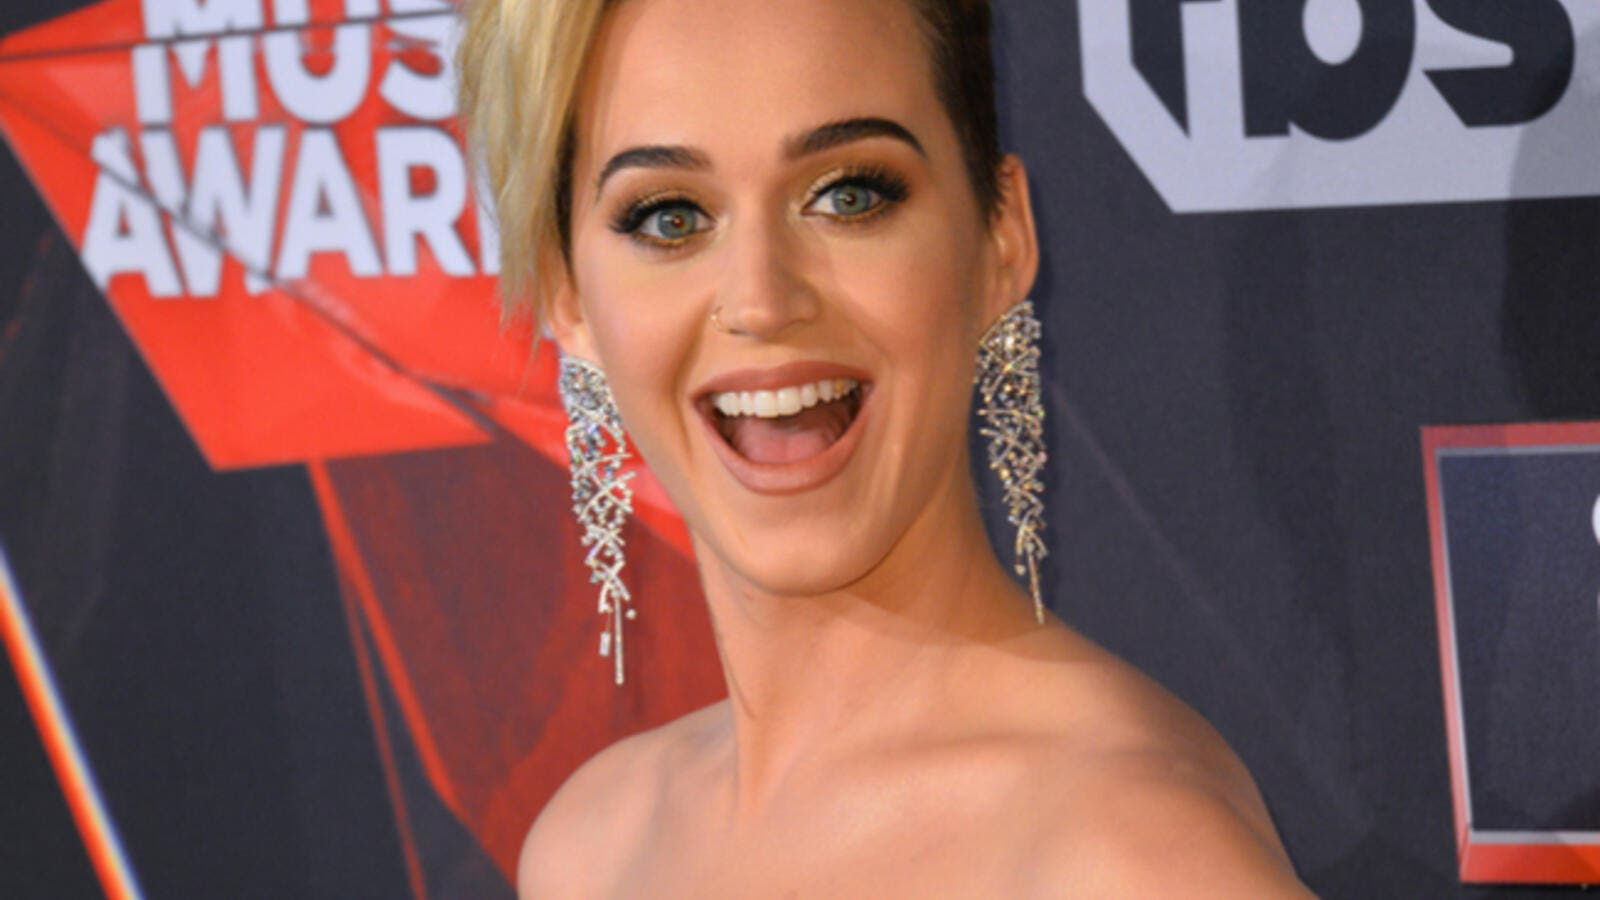 Katy and Orlando have been on and off for a number of months but back in October, Katy revealed that being single is helping her career. (Source: Featureflash Photo Agency - Shutterstock)